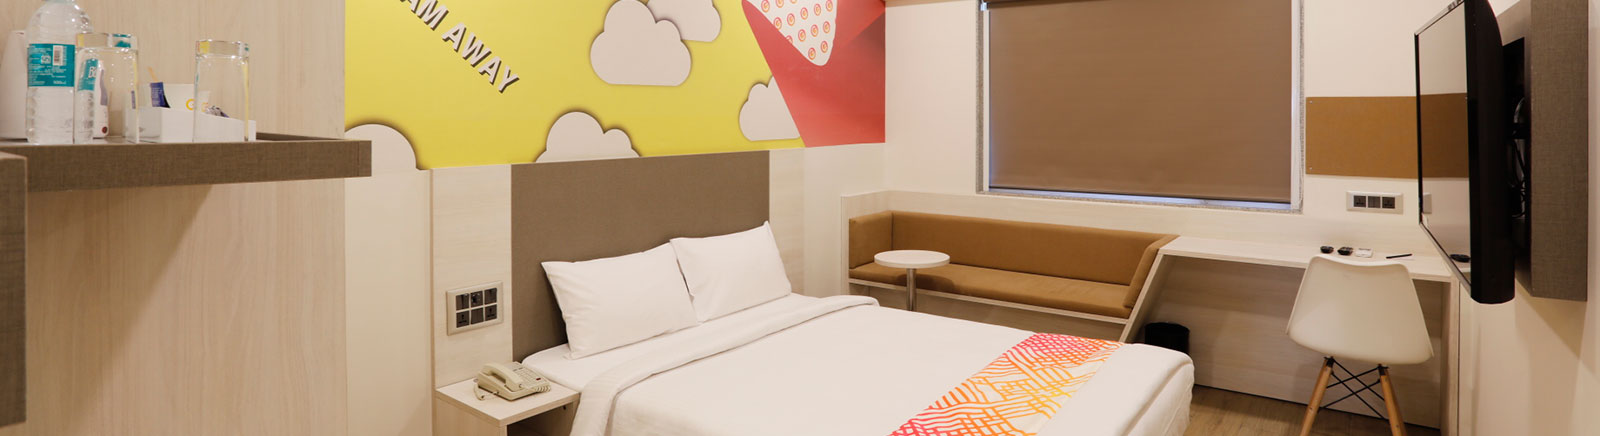 Ginger Hotel Sanand Photo Gallery